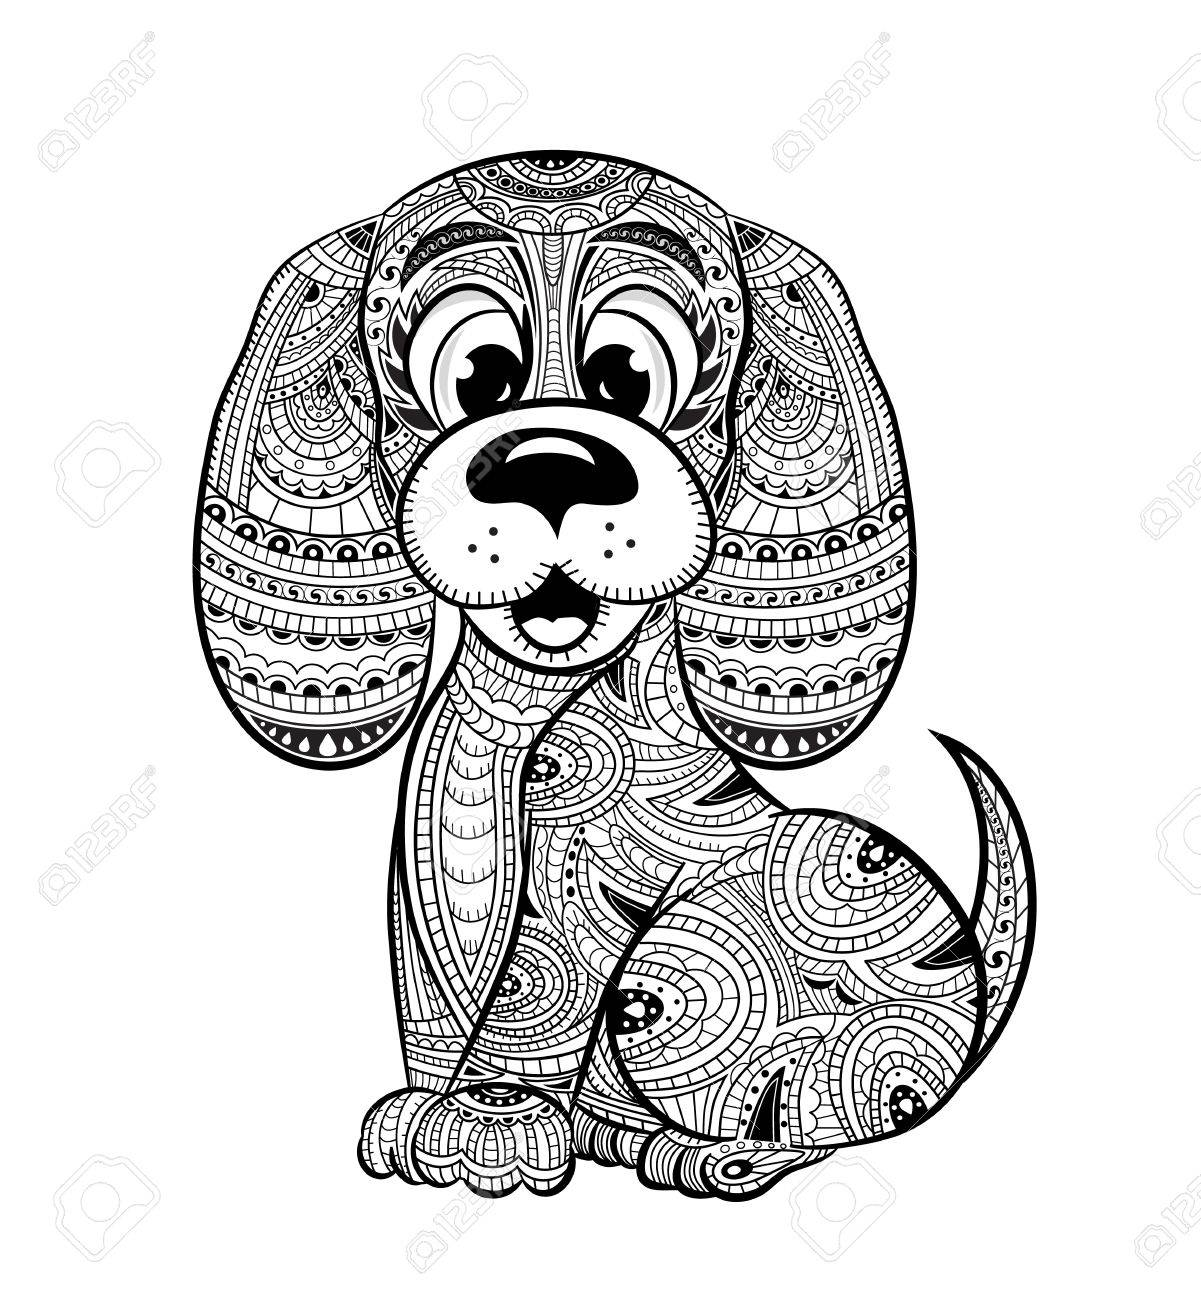 Dog Anti Stress Coloring Book For Adults Black And White Hand Drawn Doodle